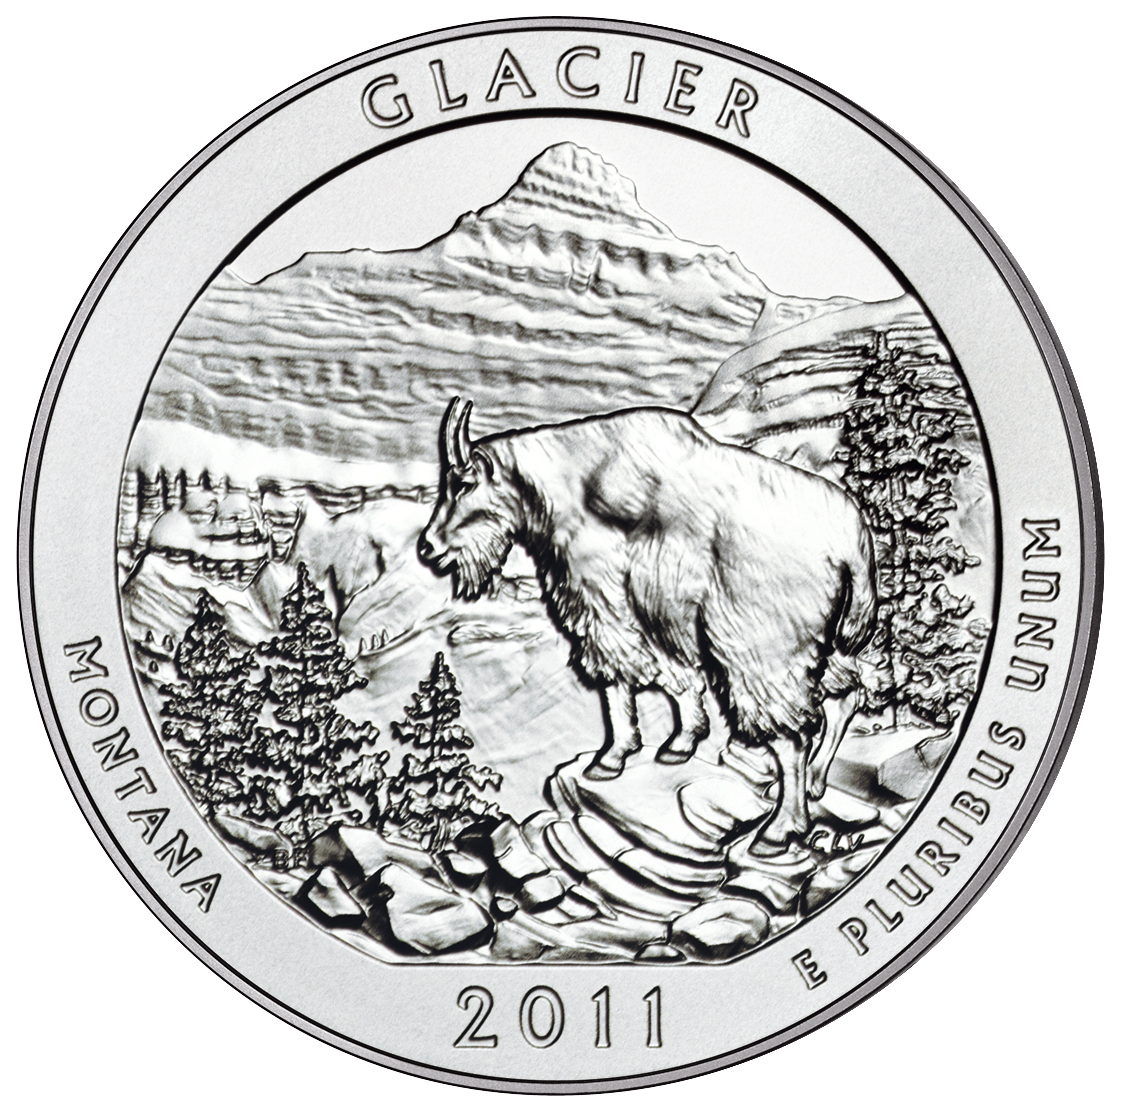 2011 America The Beautiful Quarters Five Ounce Silver Uncirculated Coin Glacier Montana Reverse